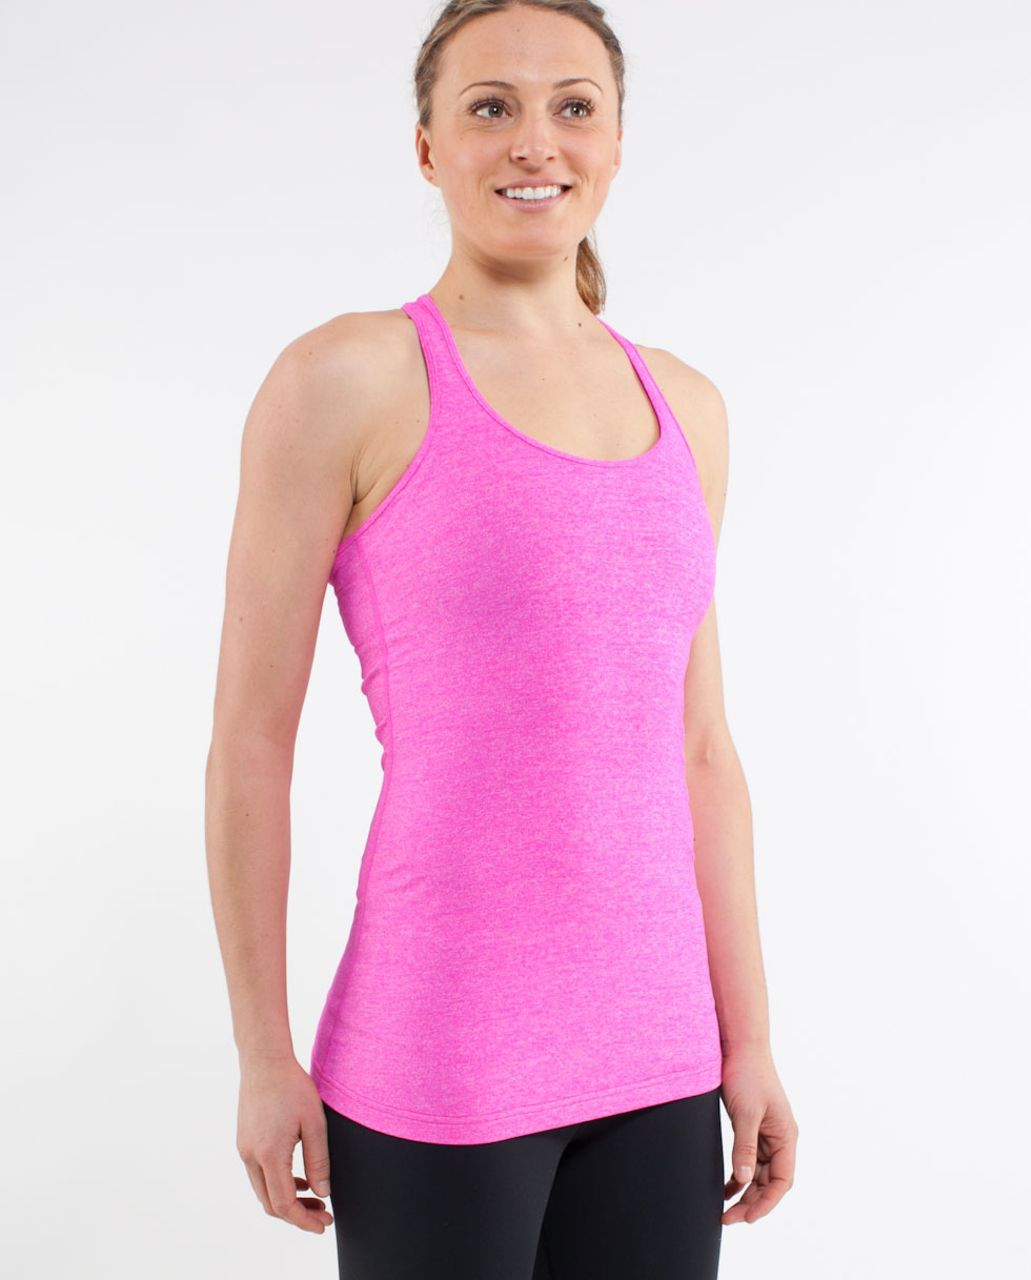 Lululemon Cool Racerback - Heathered Paris Pink